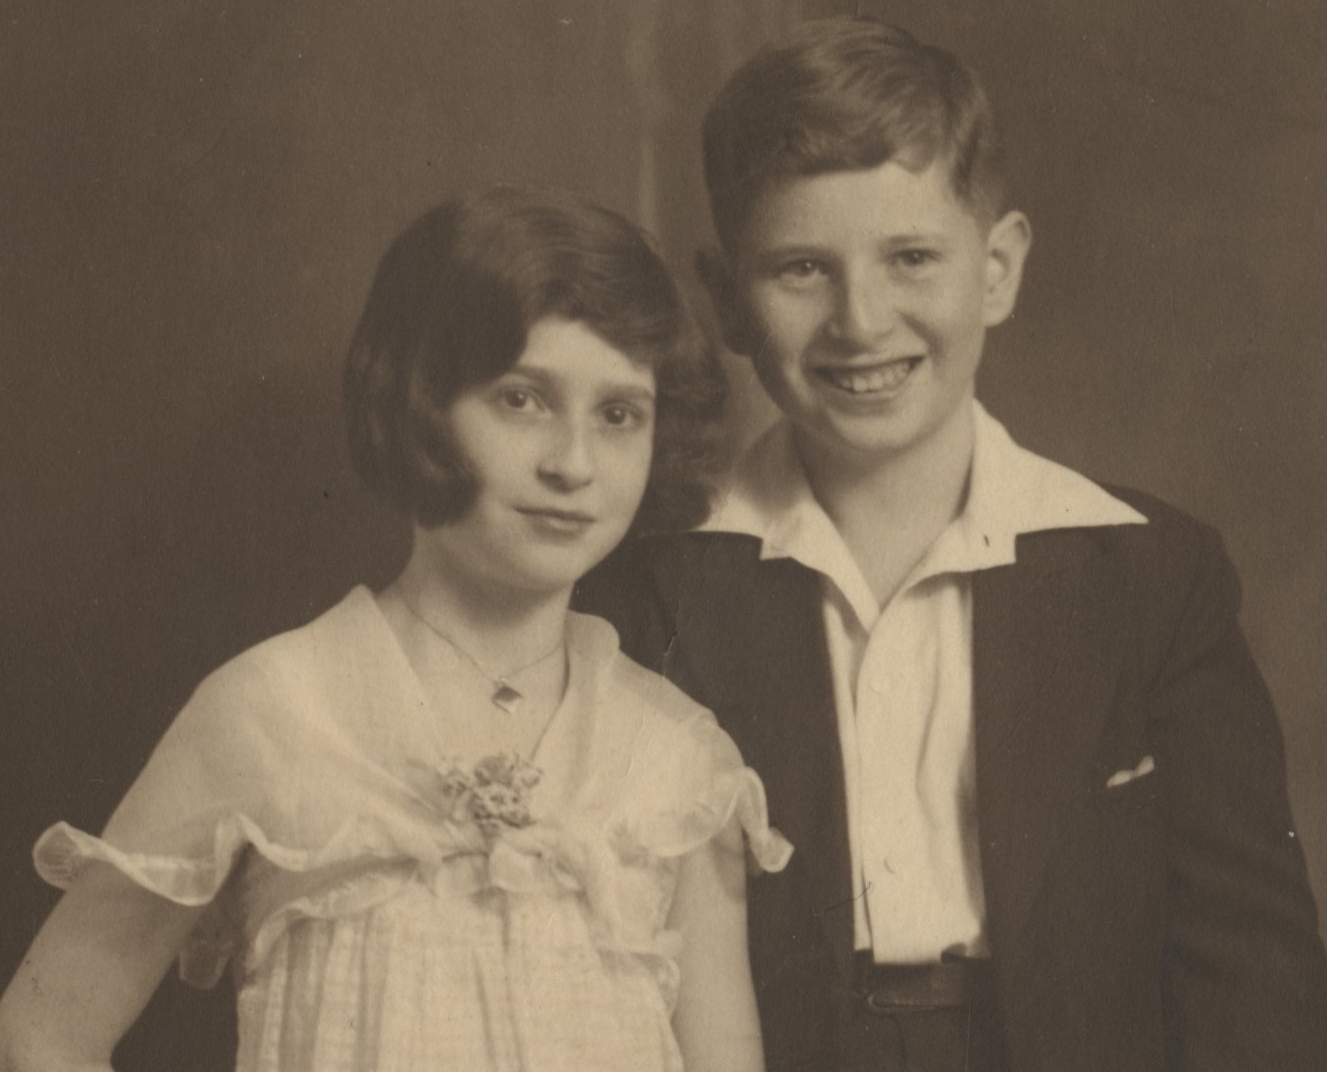 Gerda and Erwin Gumpel at Erwin's Bar Mitzvah -- 1933, Hamburg, Germany